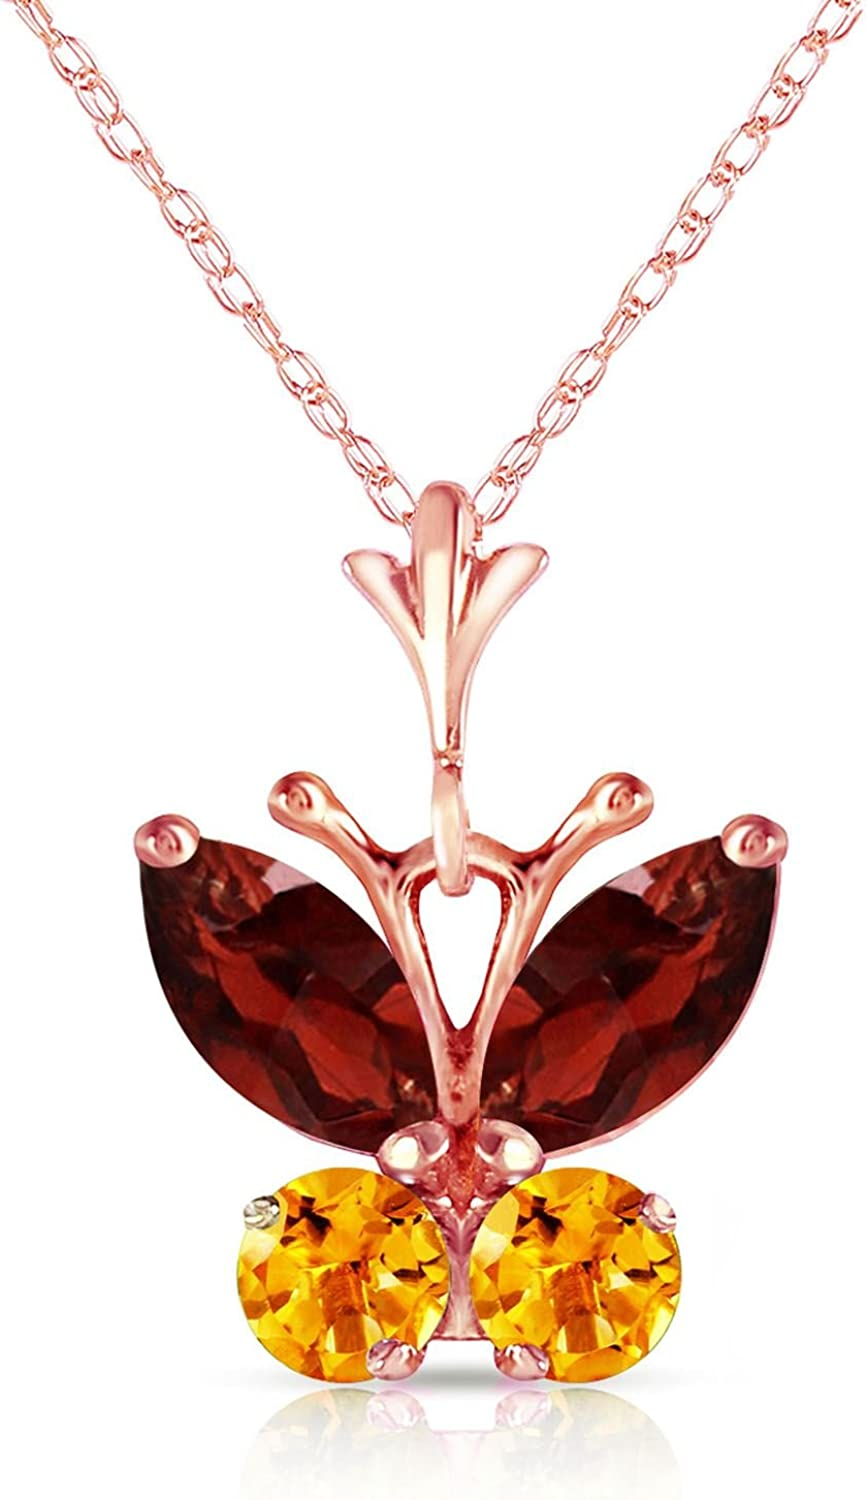 ALARRI 14K Solid Rose Gold Butterfly Necklace w// Citrines with 24 Inch Chain Length